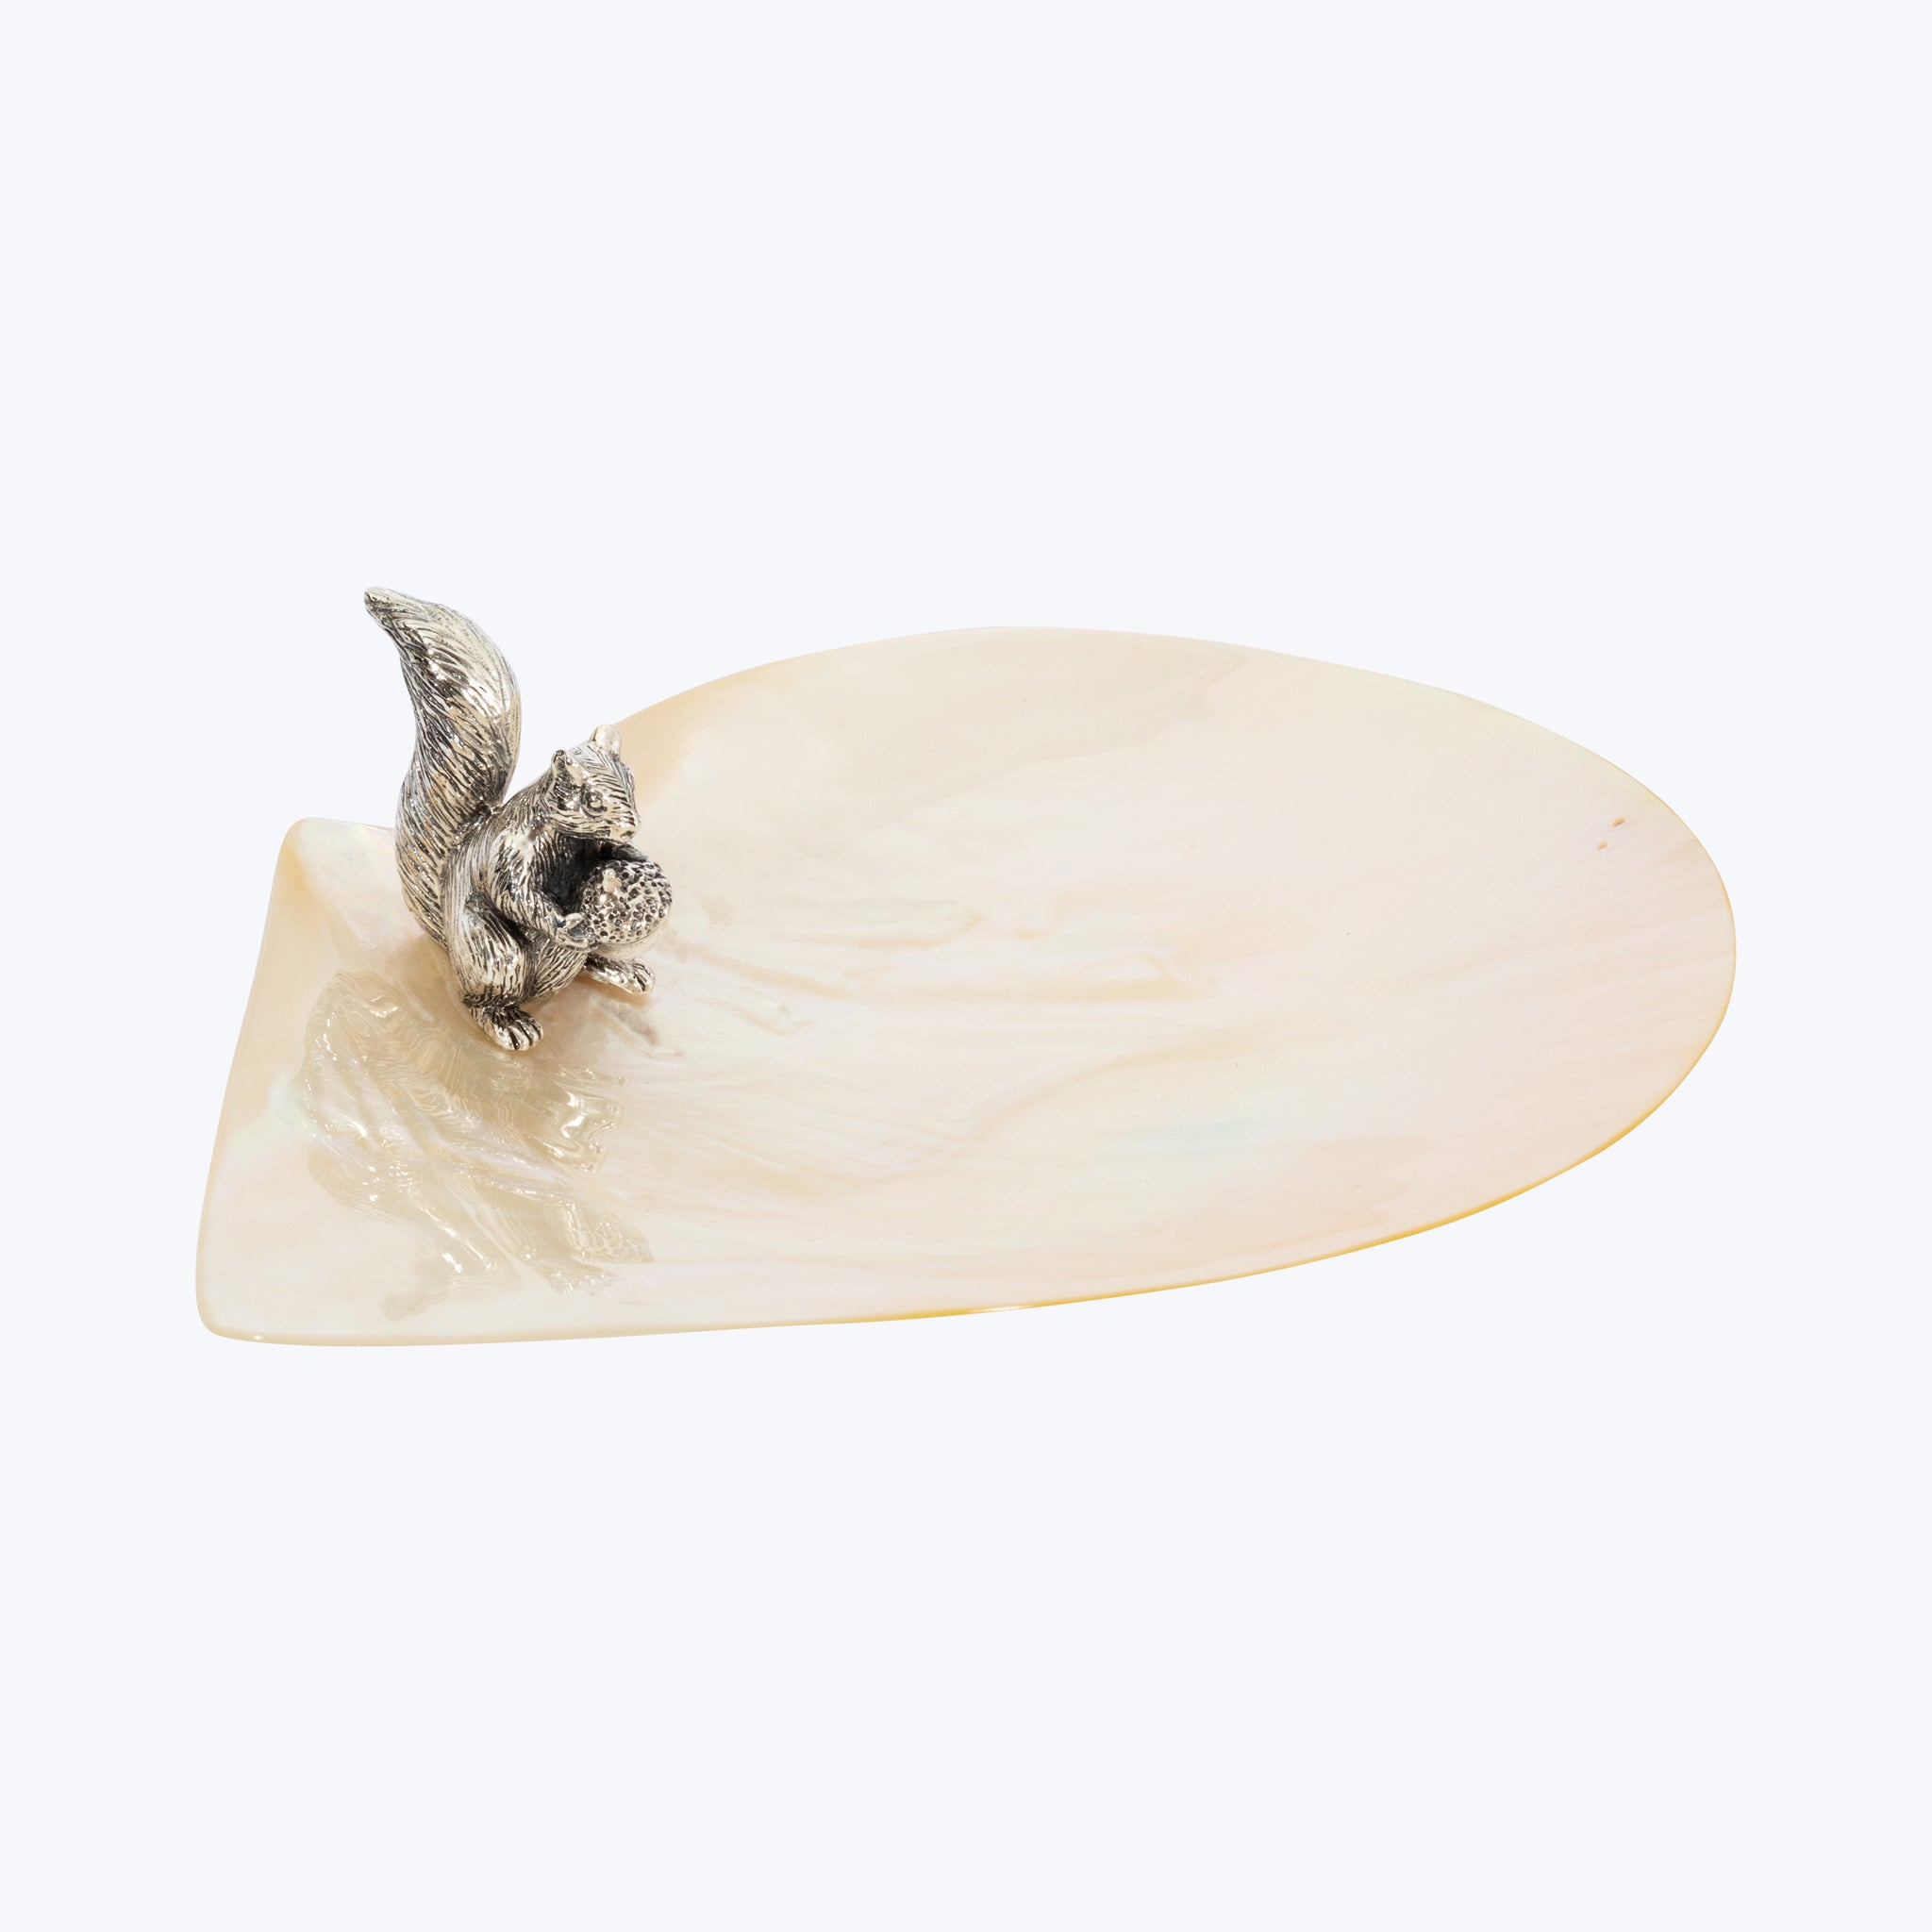 Mother of Pearl Plate with Squirrel